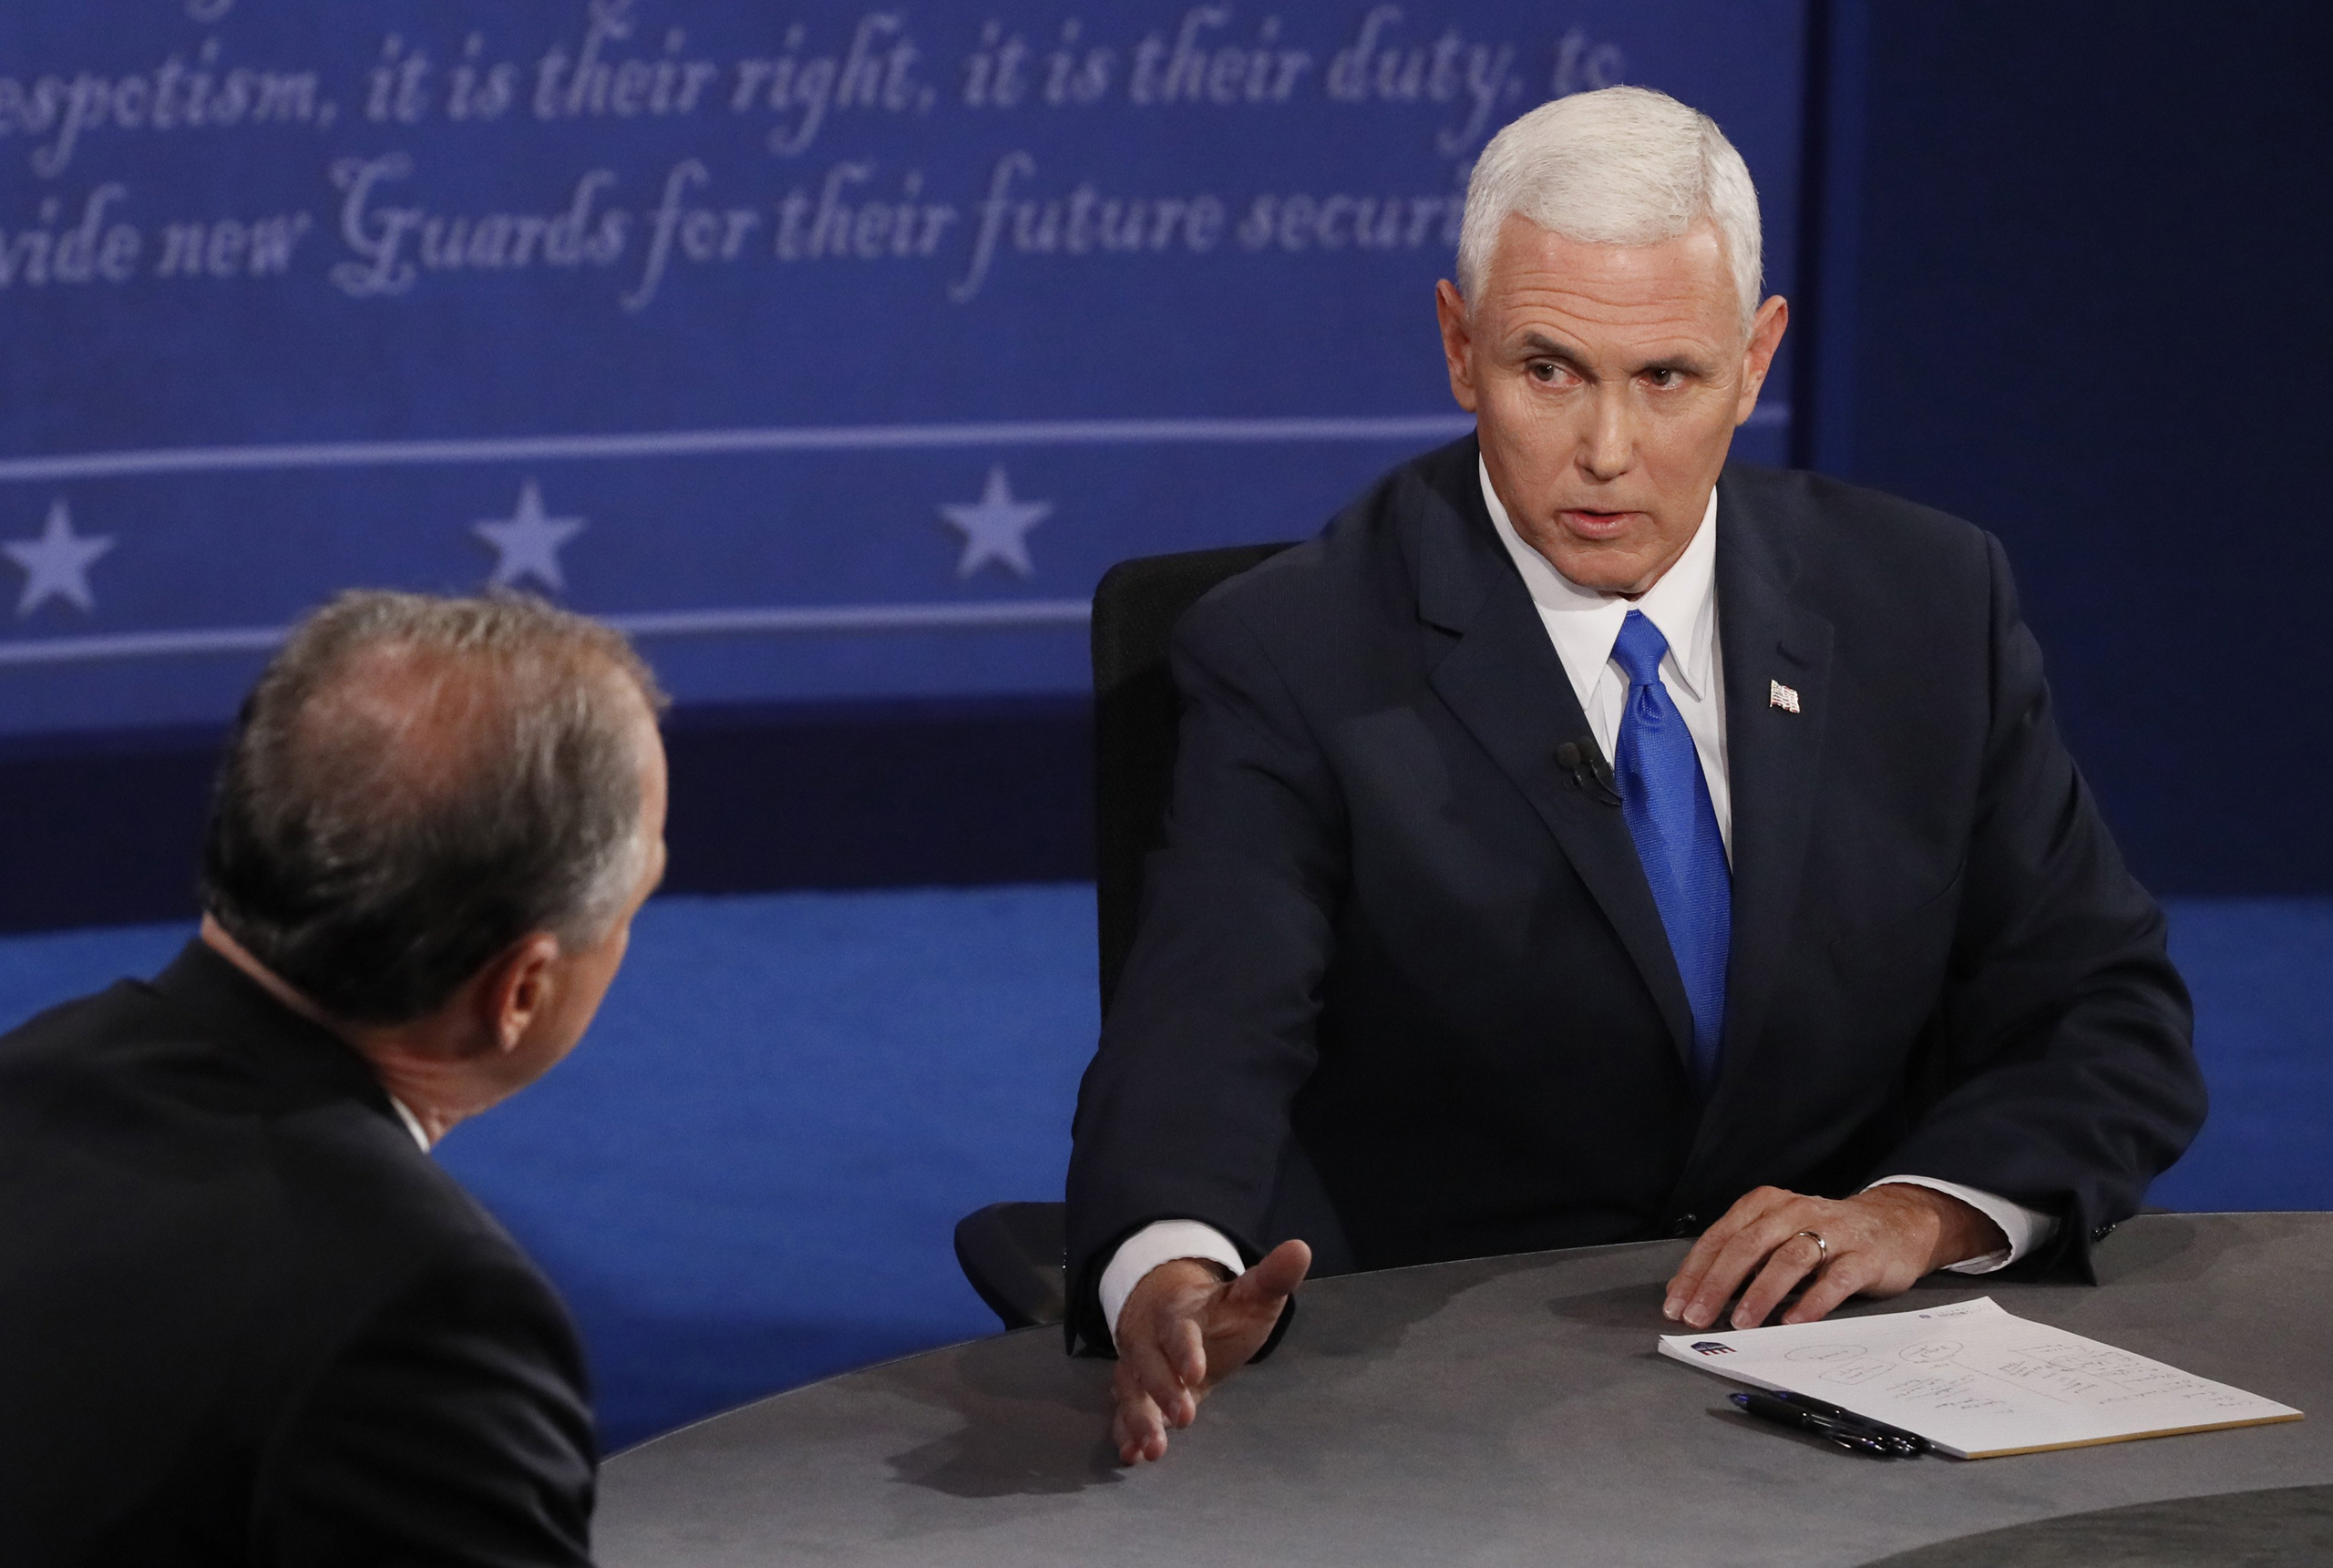 Democratic candidate for Vice President Tim Kaine (L) exchanges with Republican candidate for Vice President Mike Pence (R) during the first vice presidential debate at Longwood University in Farmville, Virginia, on Oct. 4, 2016.